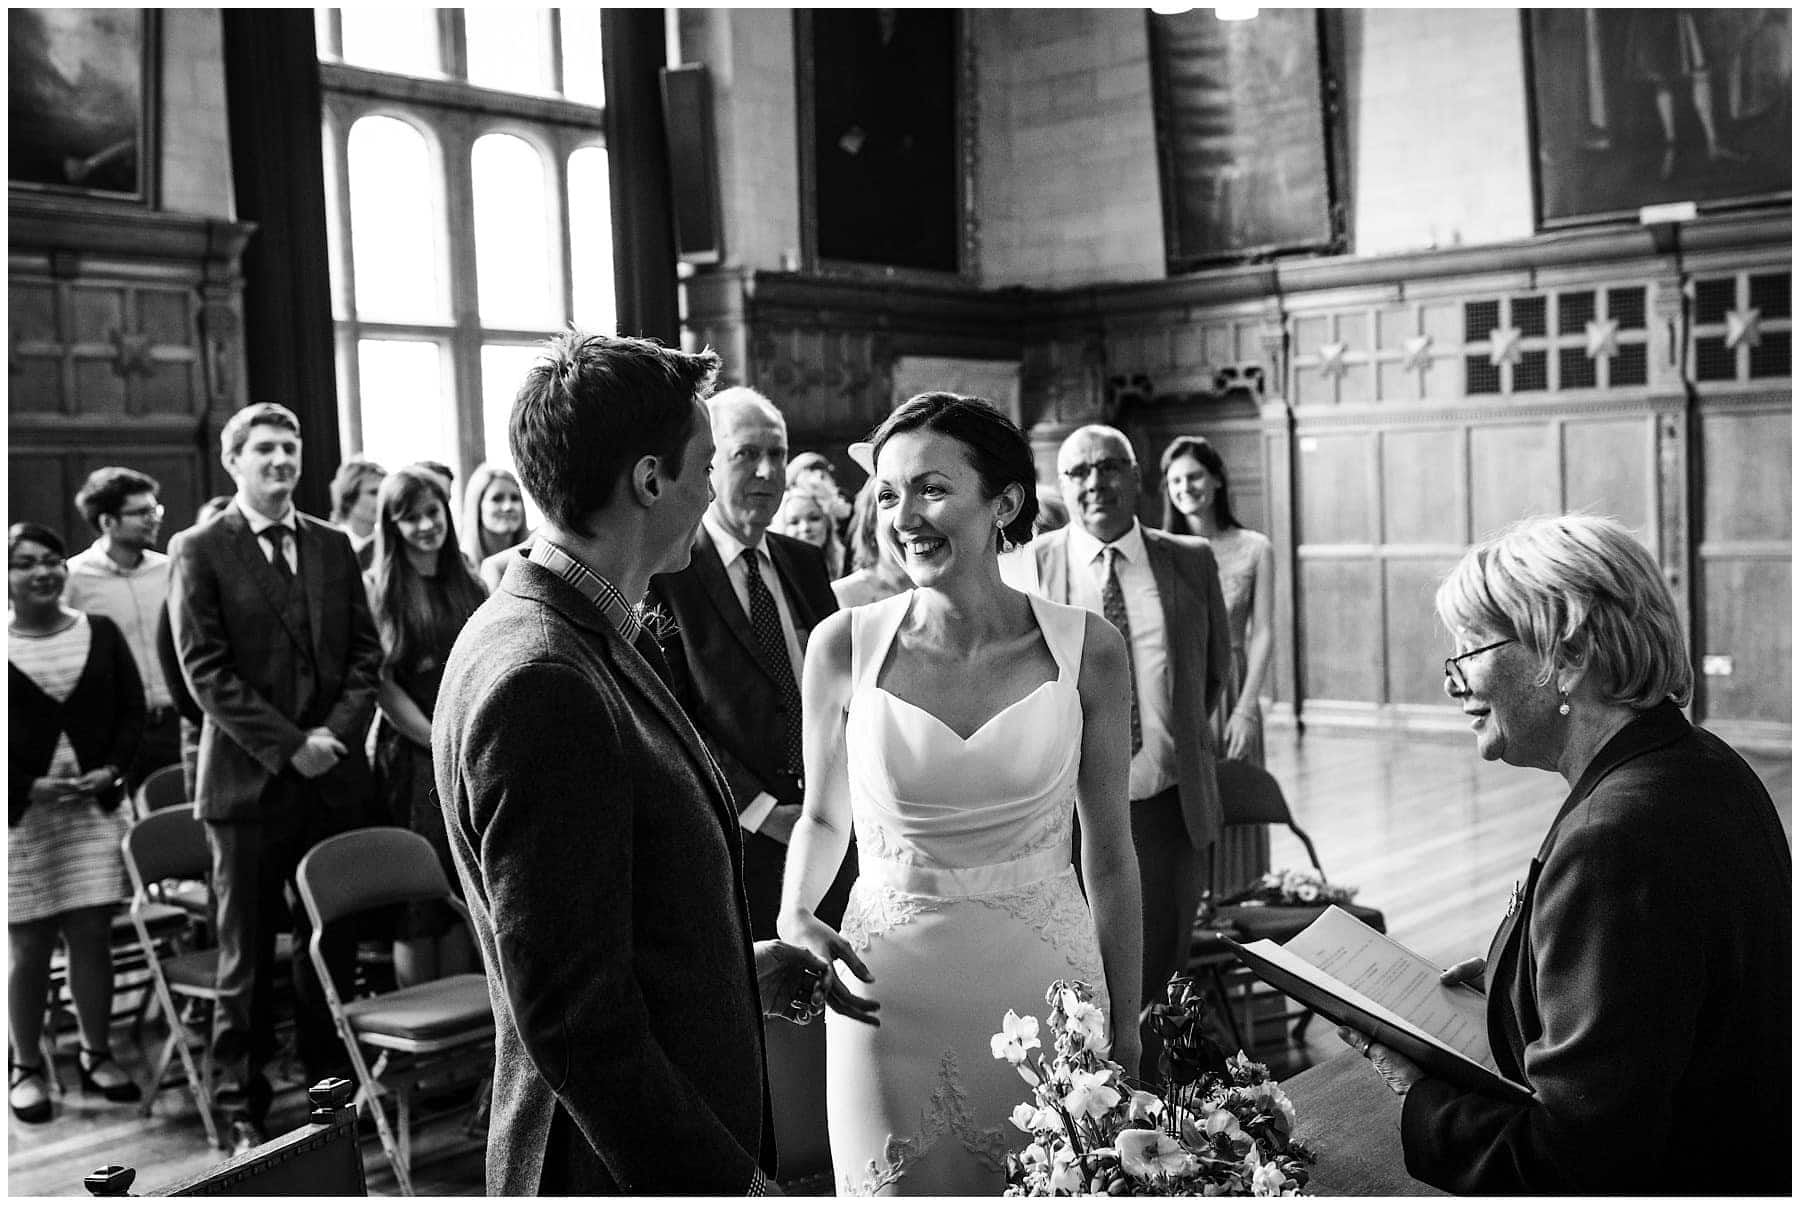 Oxfordshire wedding Photographer J S Coates Wedding Photography. Oxford Town Hall & The Perch Pub 34